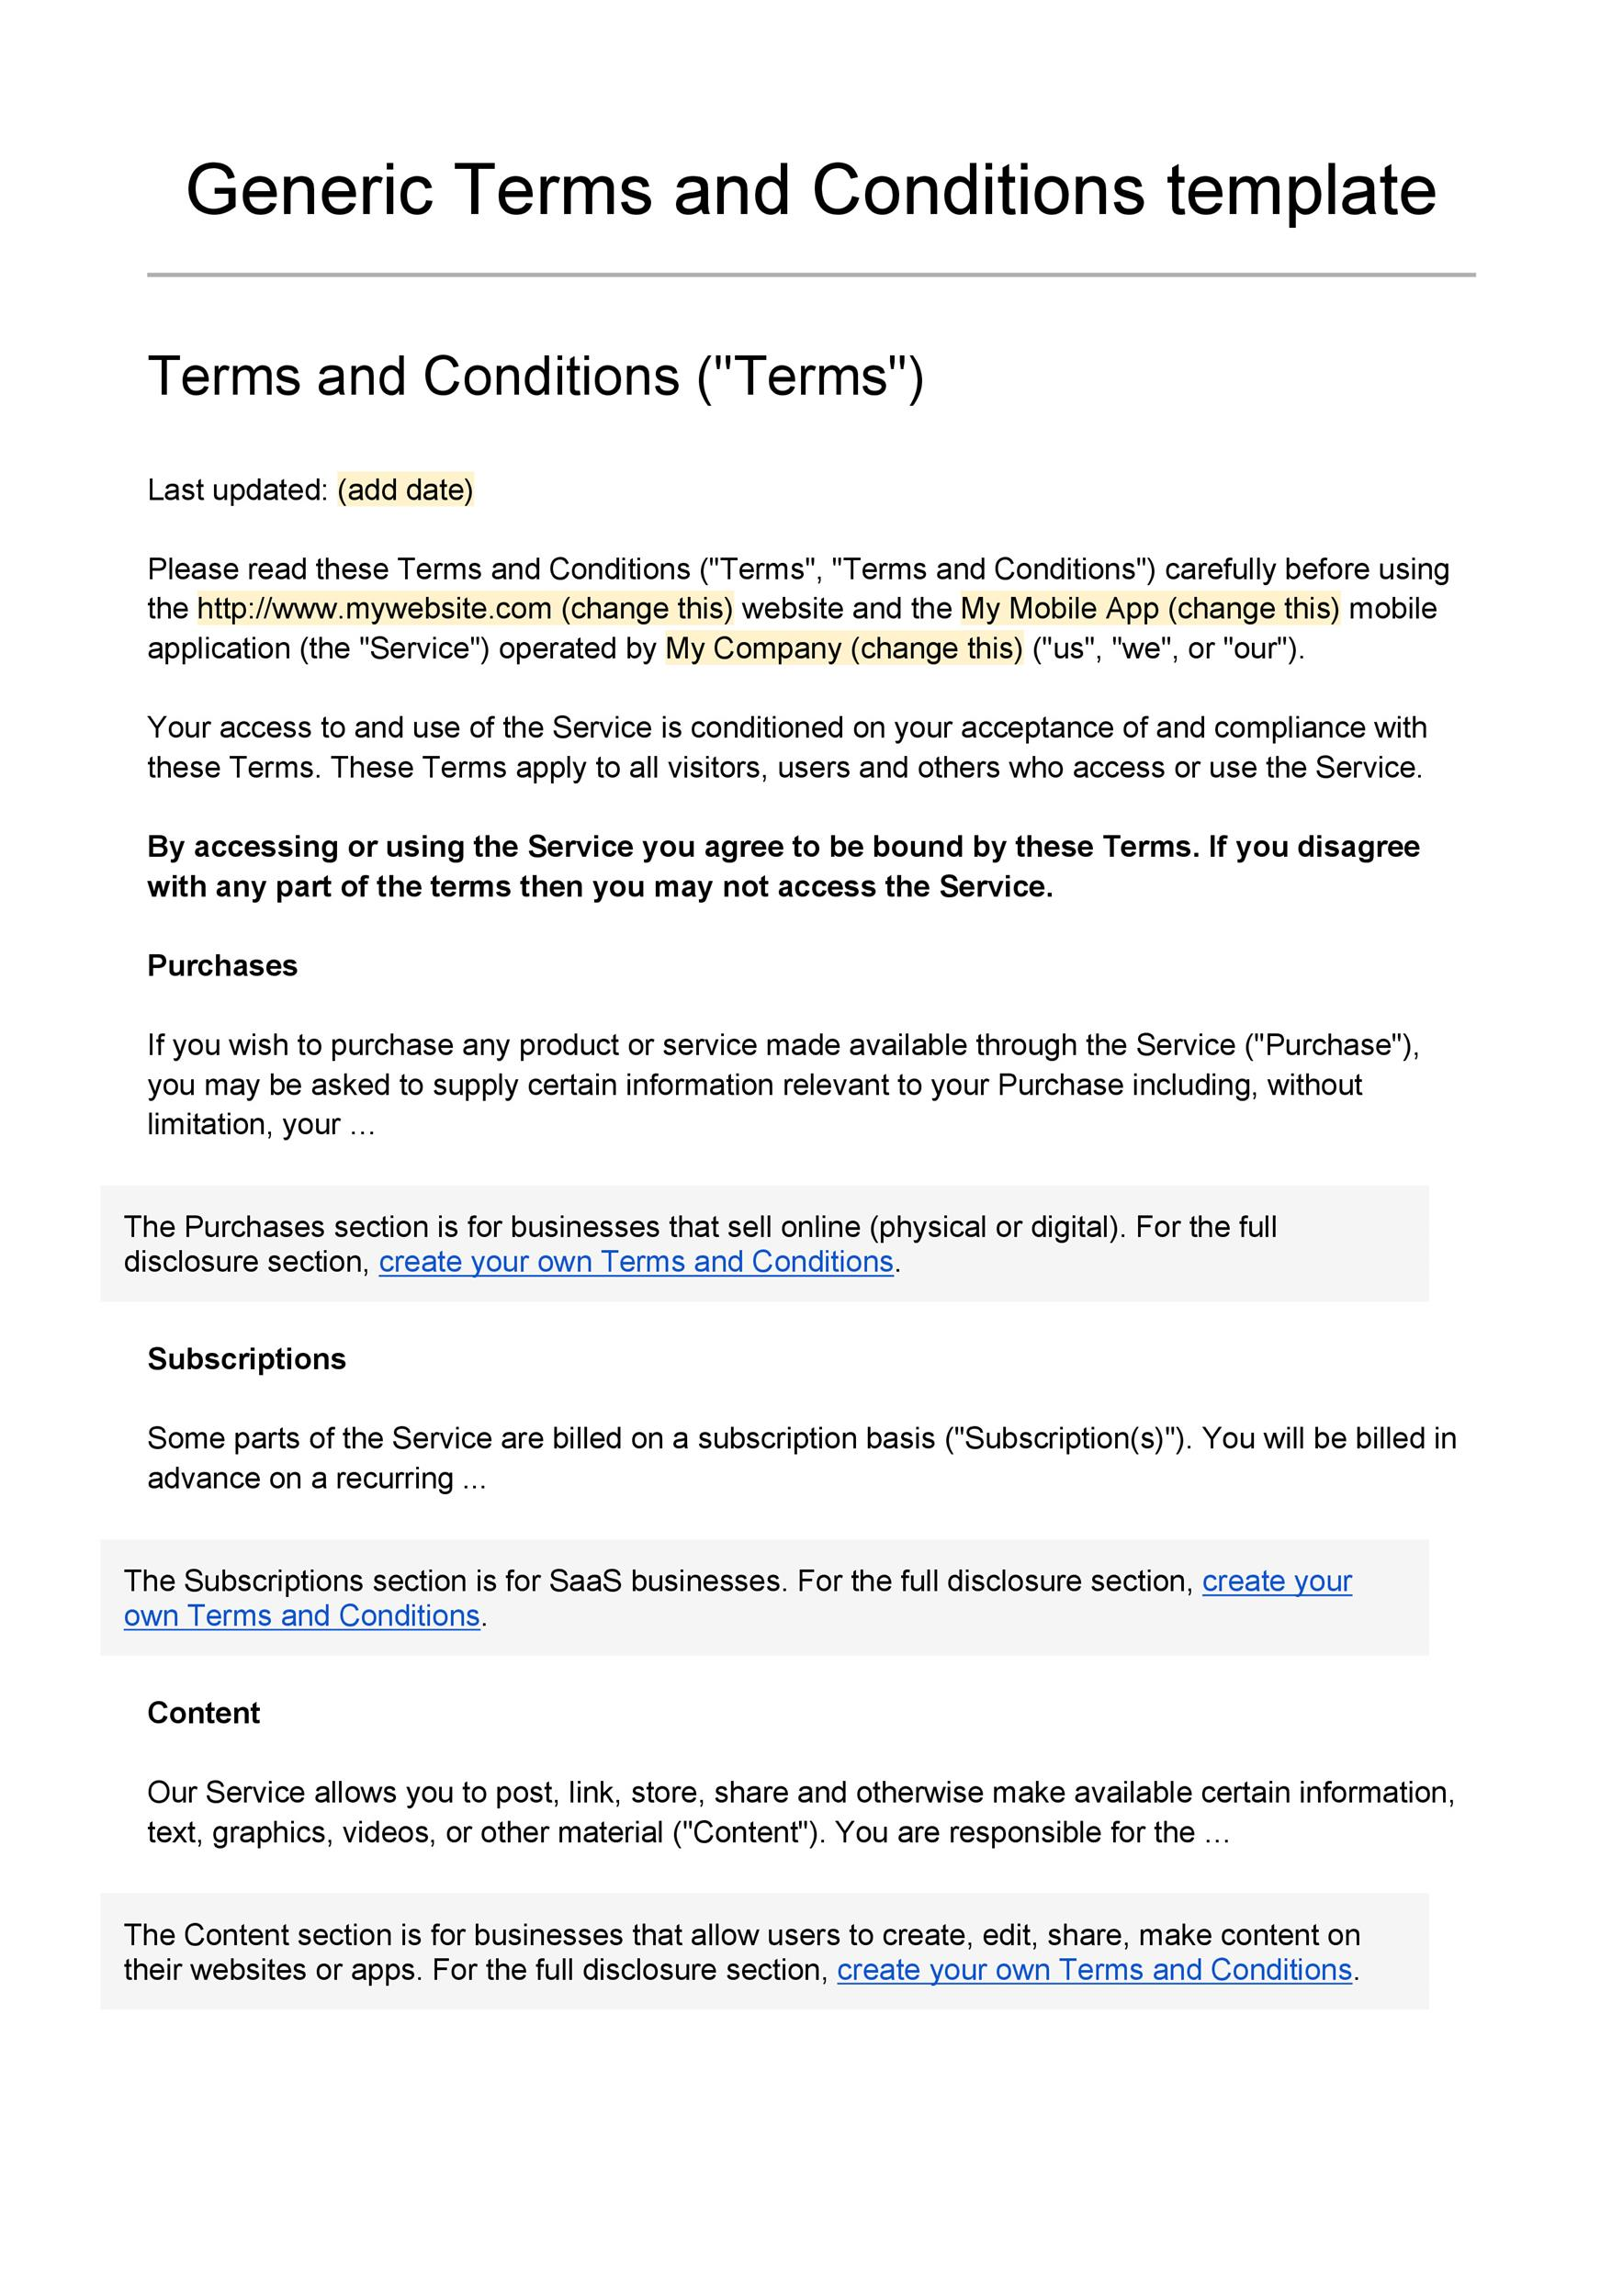 40 free terms and conditions templates for any website for Terms and conditions template usa